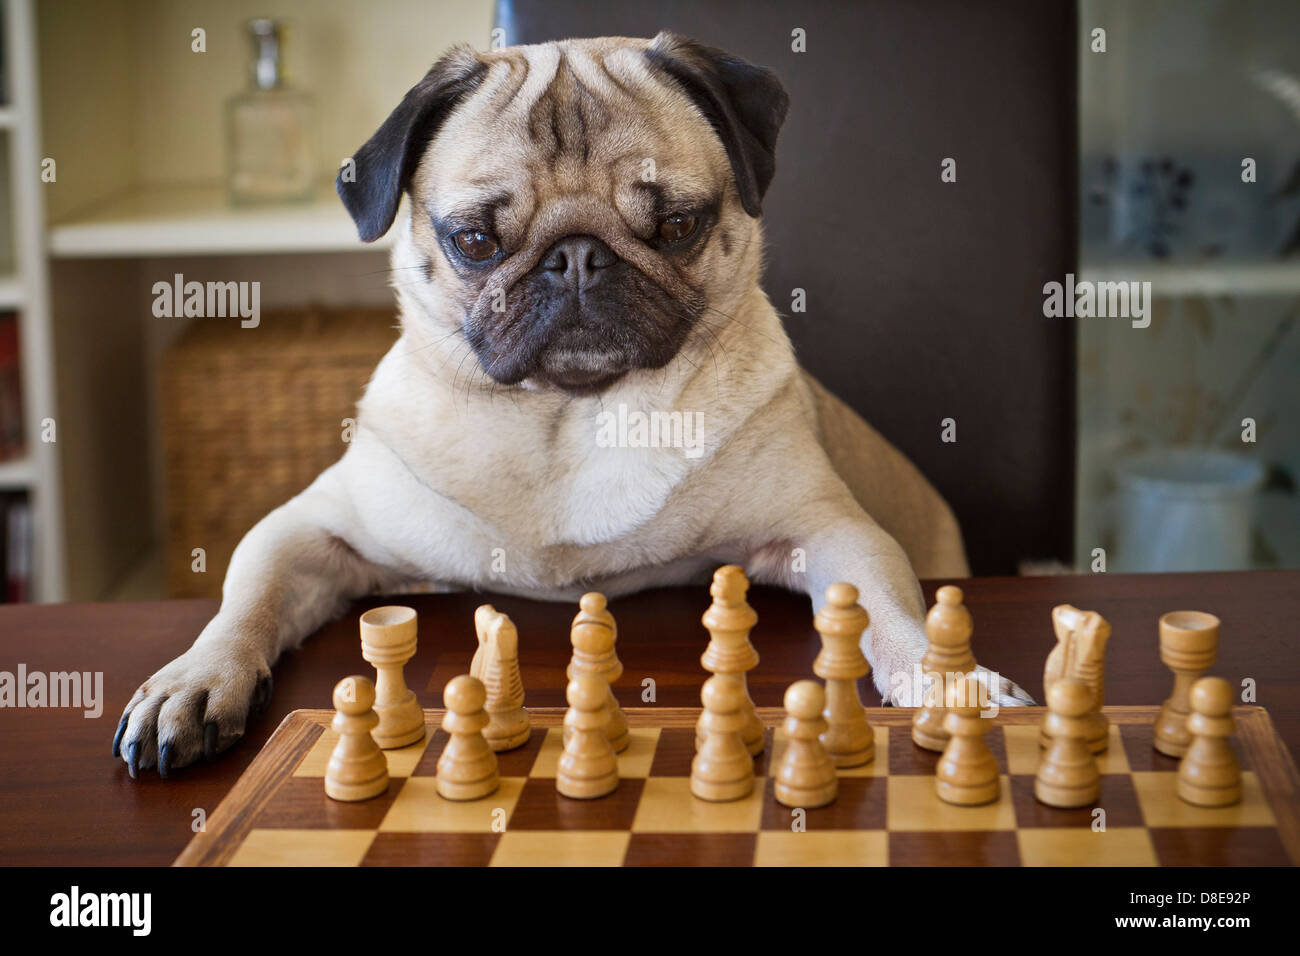 Pug dog sitting at checkerboard - Stock Image